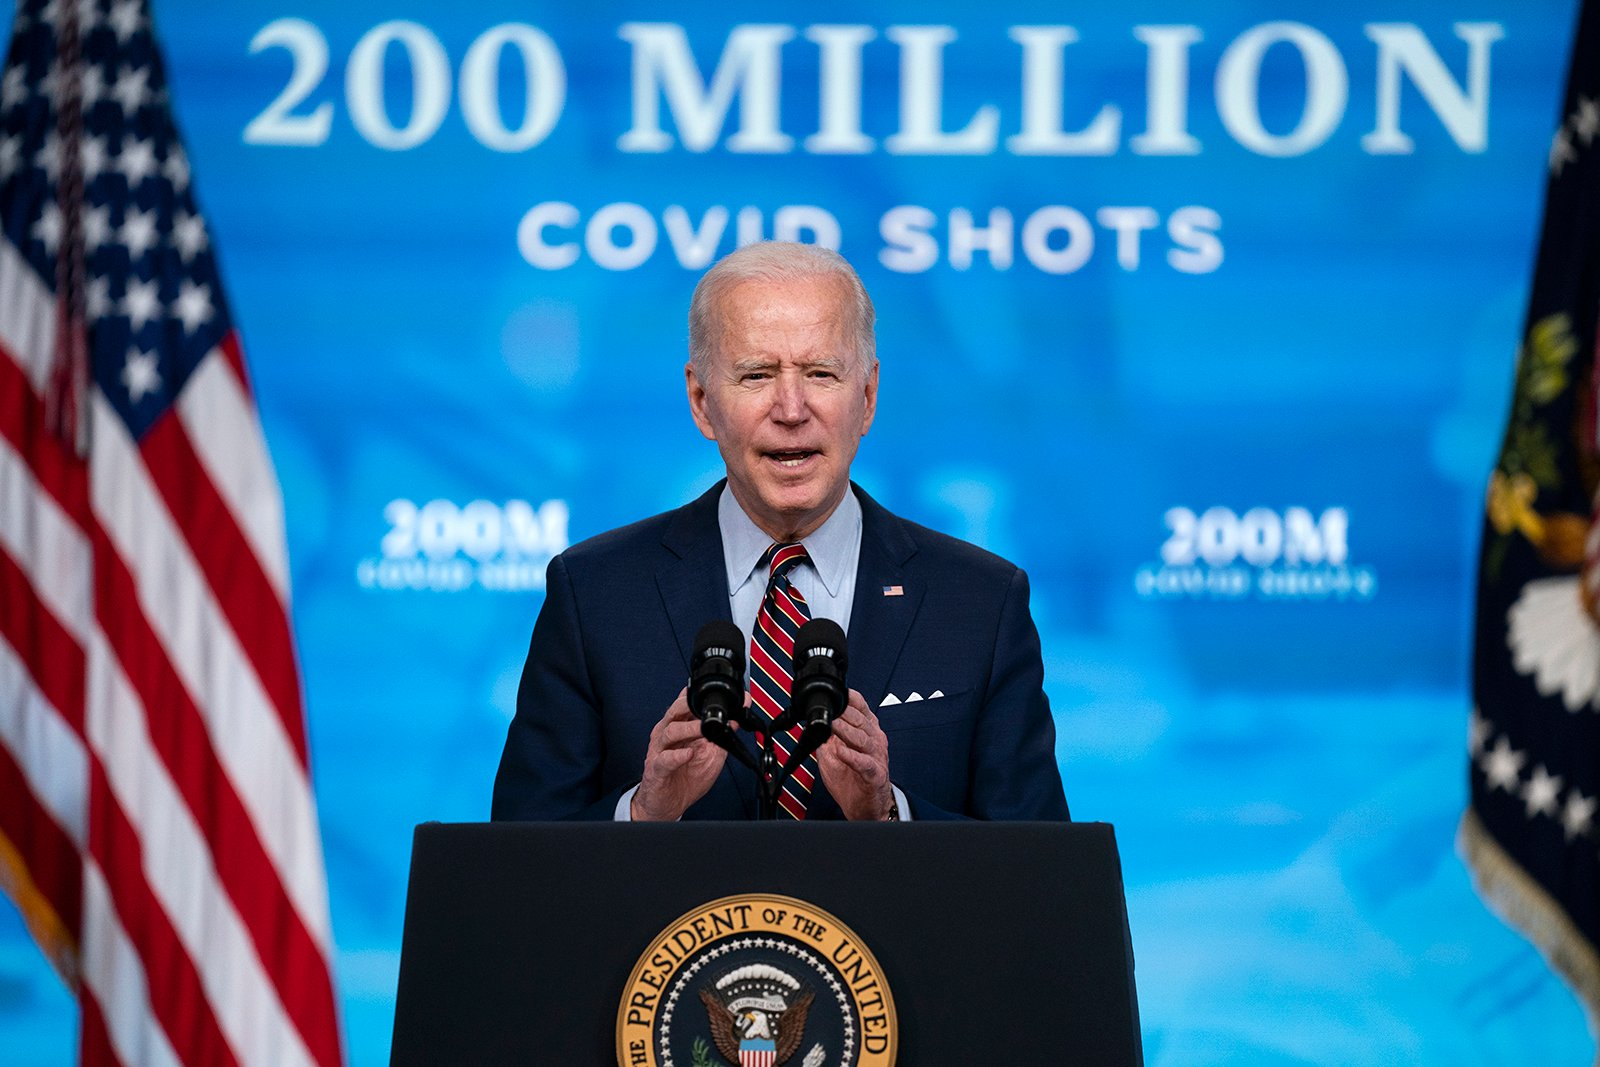 With Pope Francis' blessing, Catholics pressed Biden White House to waive vaccine patents